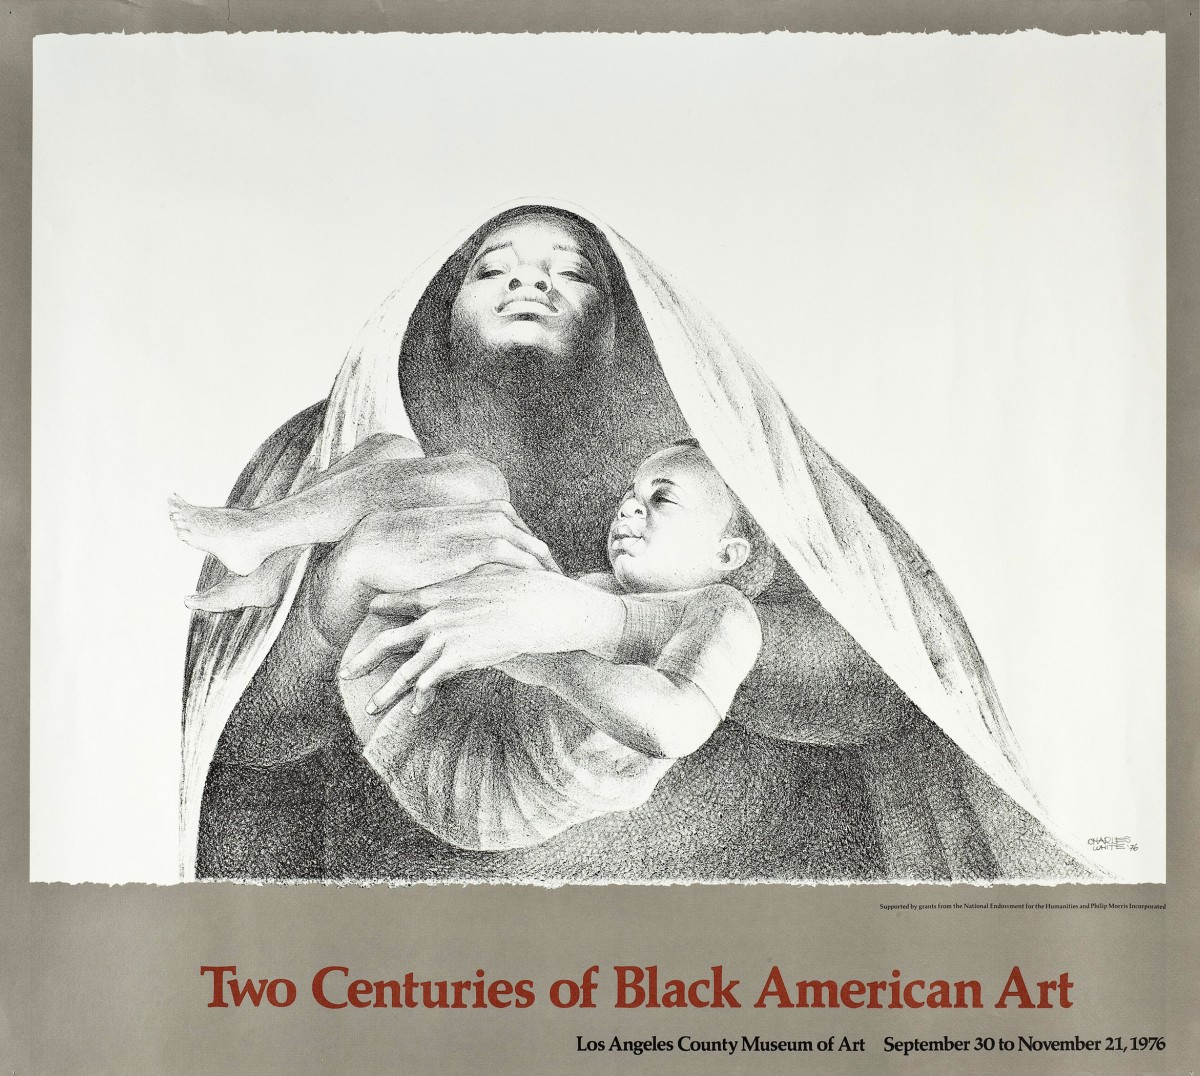 Exhibition Poster: Two Centuries of Black American Art